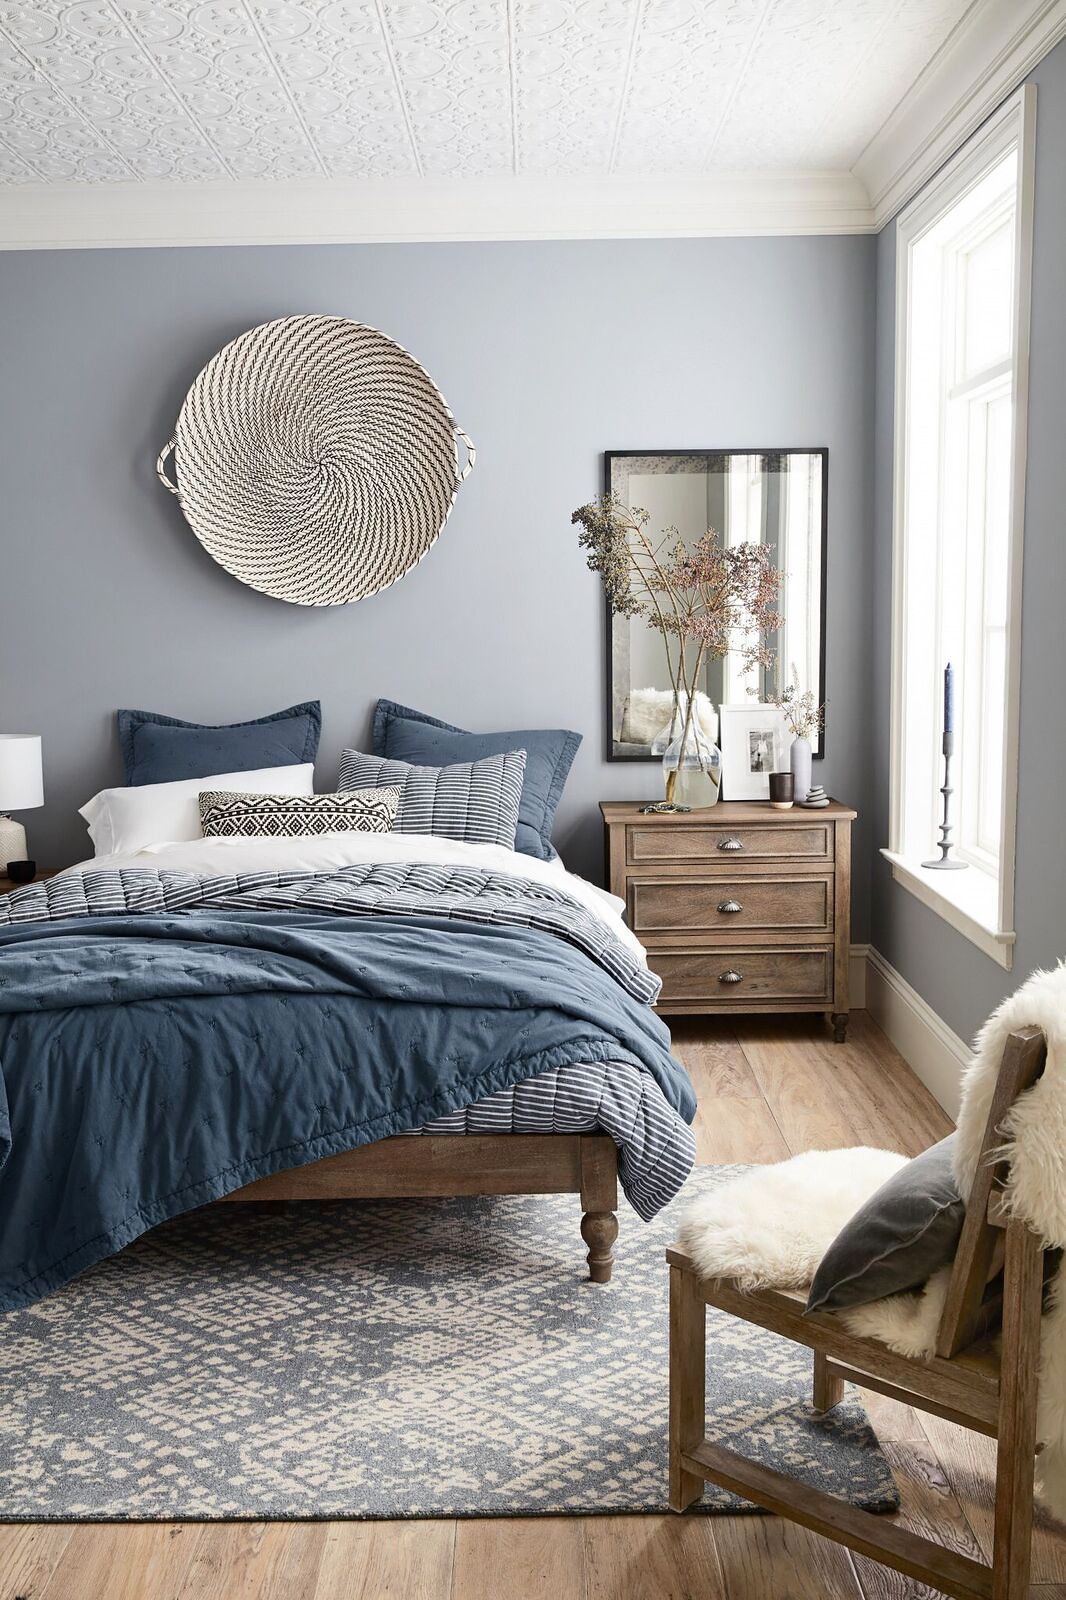 Decorating master bedroom walls - The One Thing A Designer Would Never Do In A Small Space Blue Master Bedroomguest